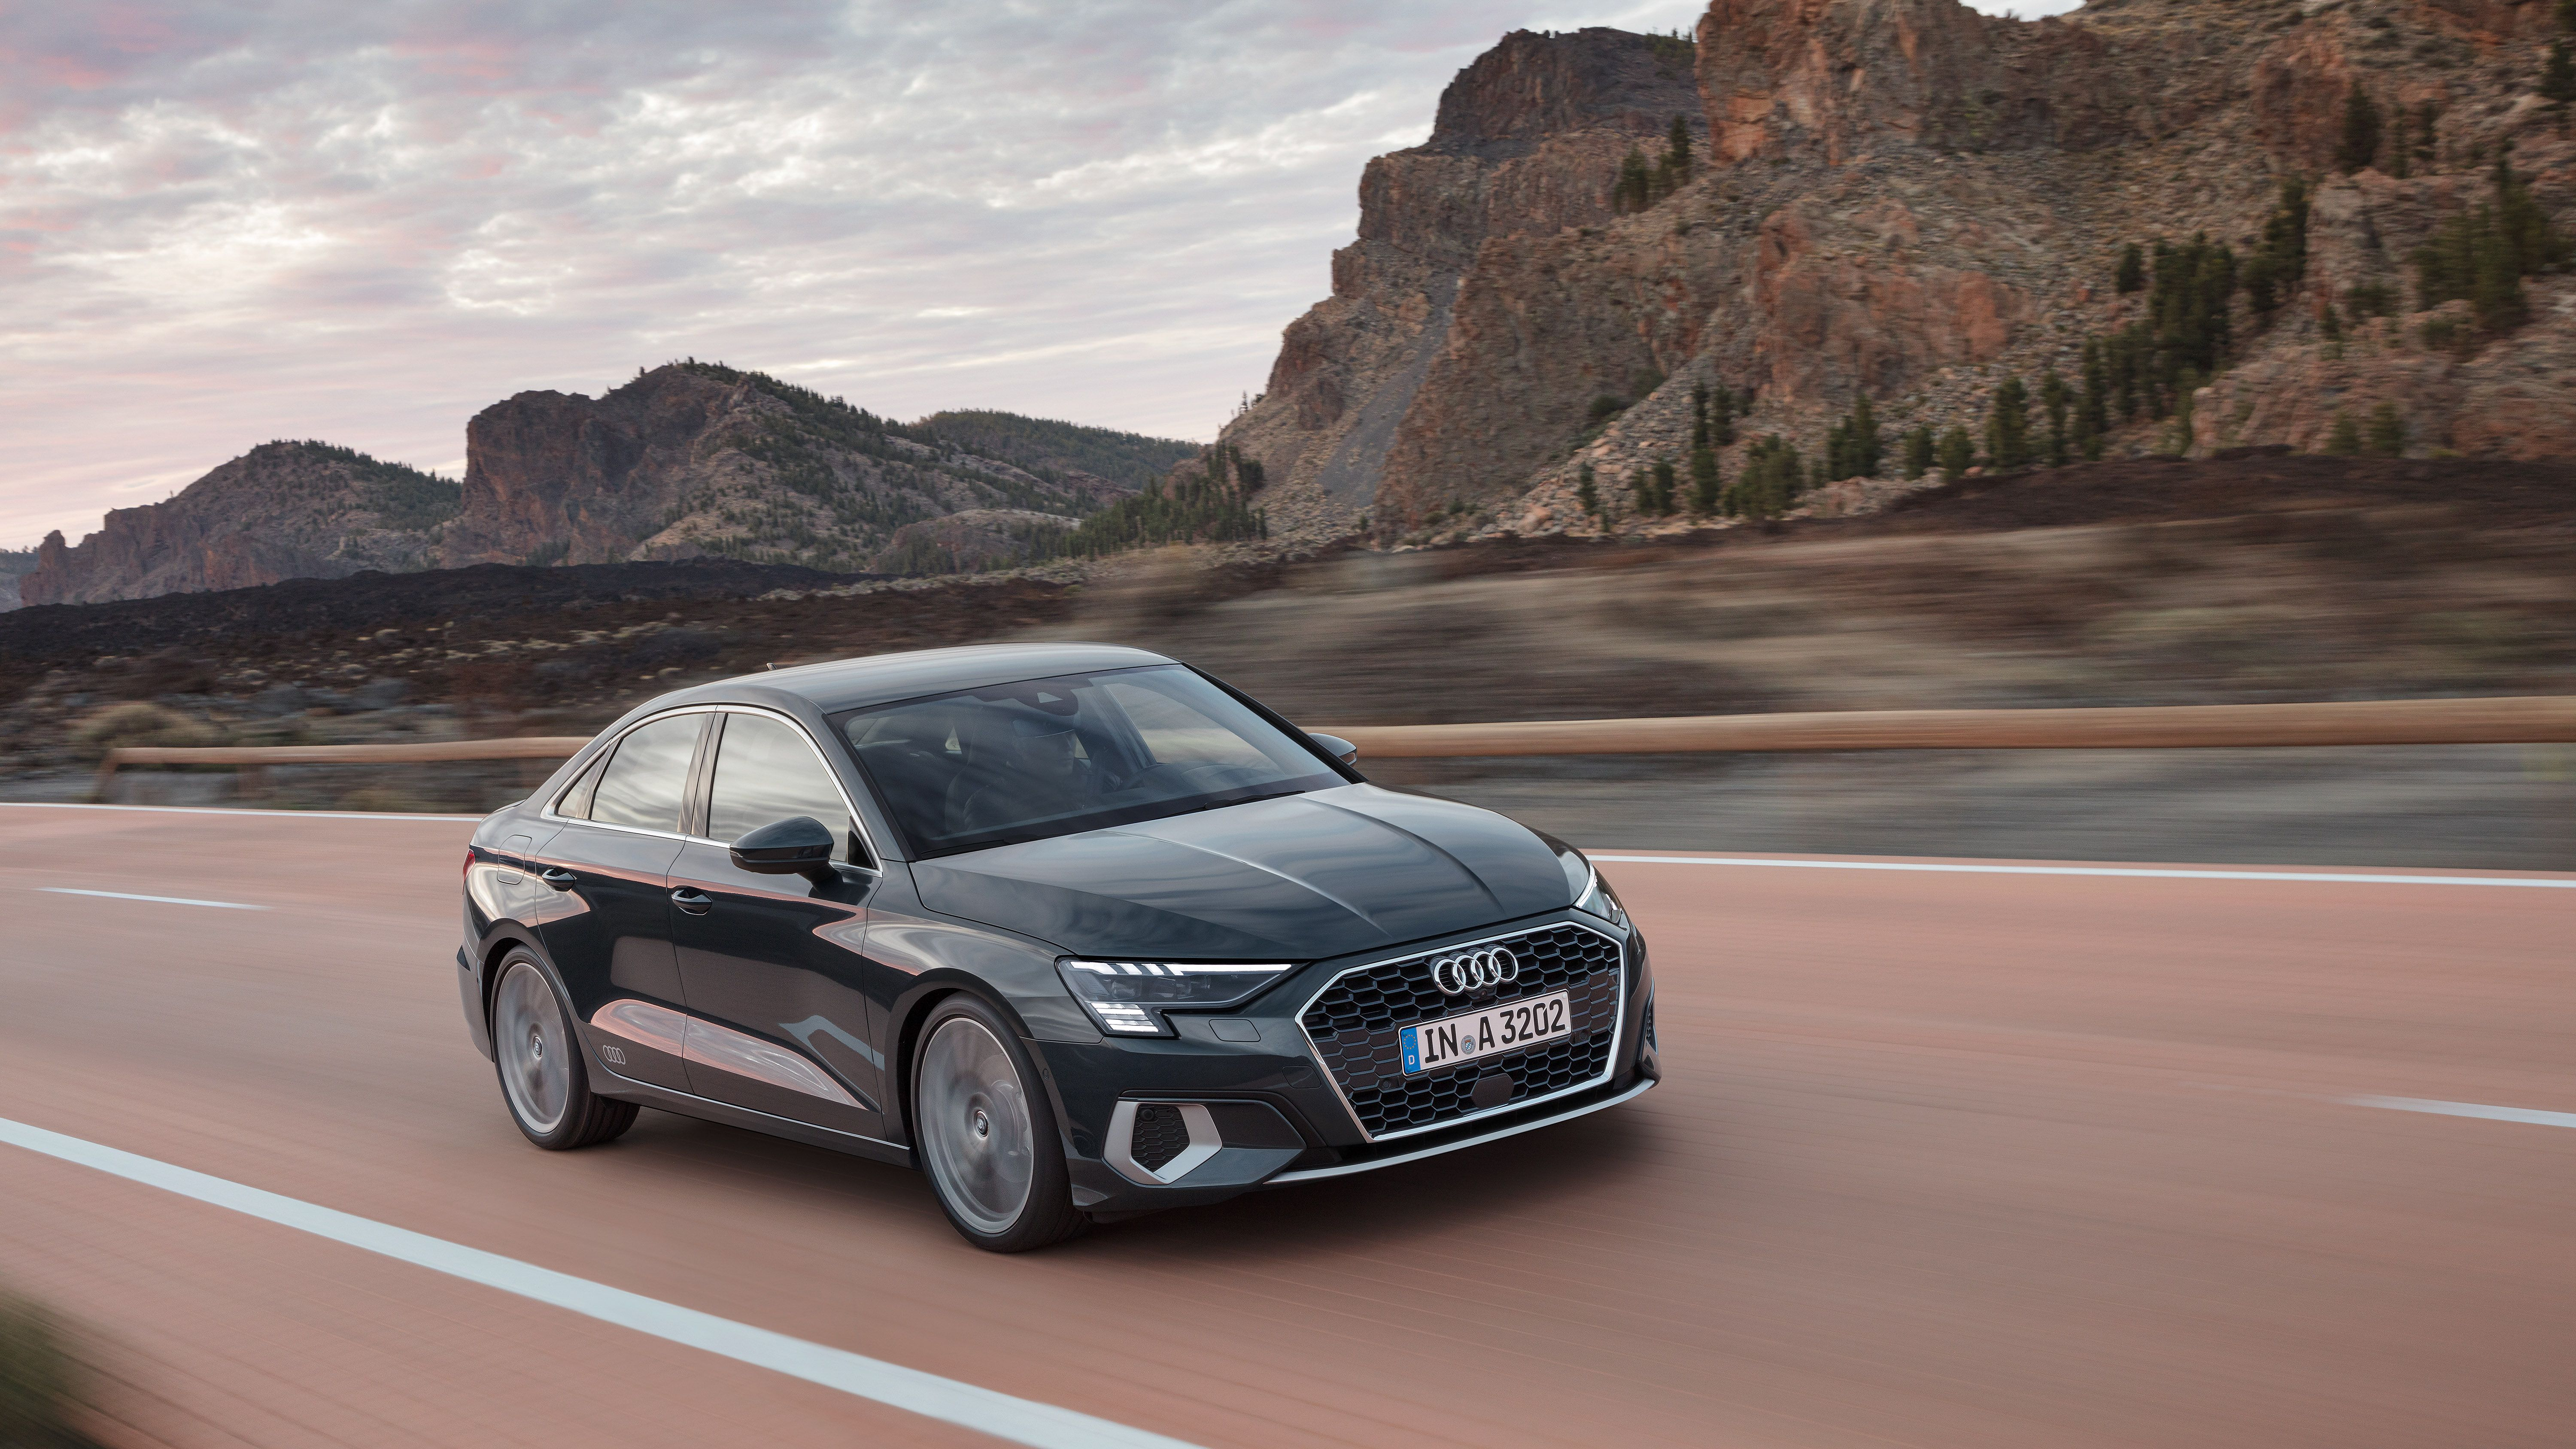 when do audi 2021 come out